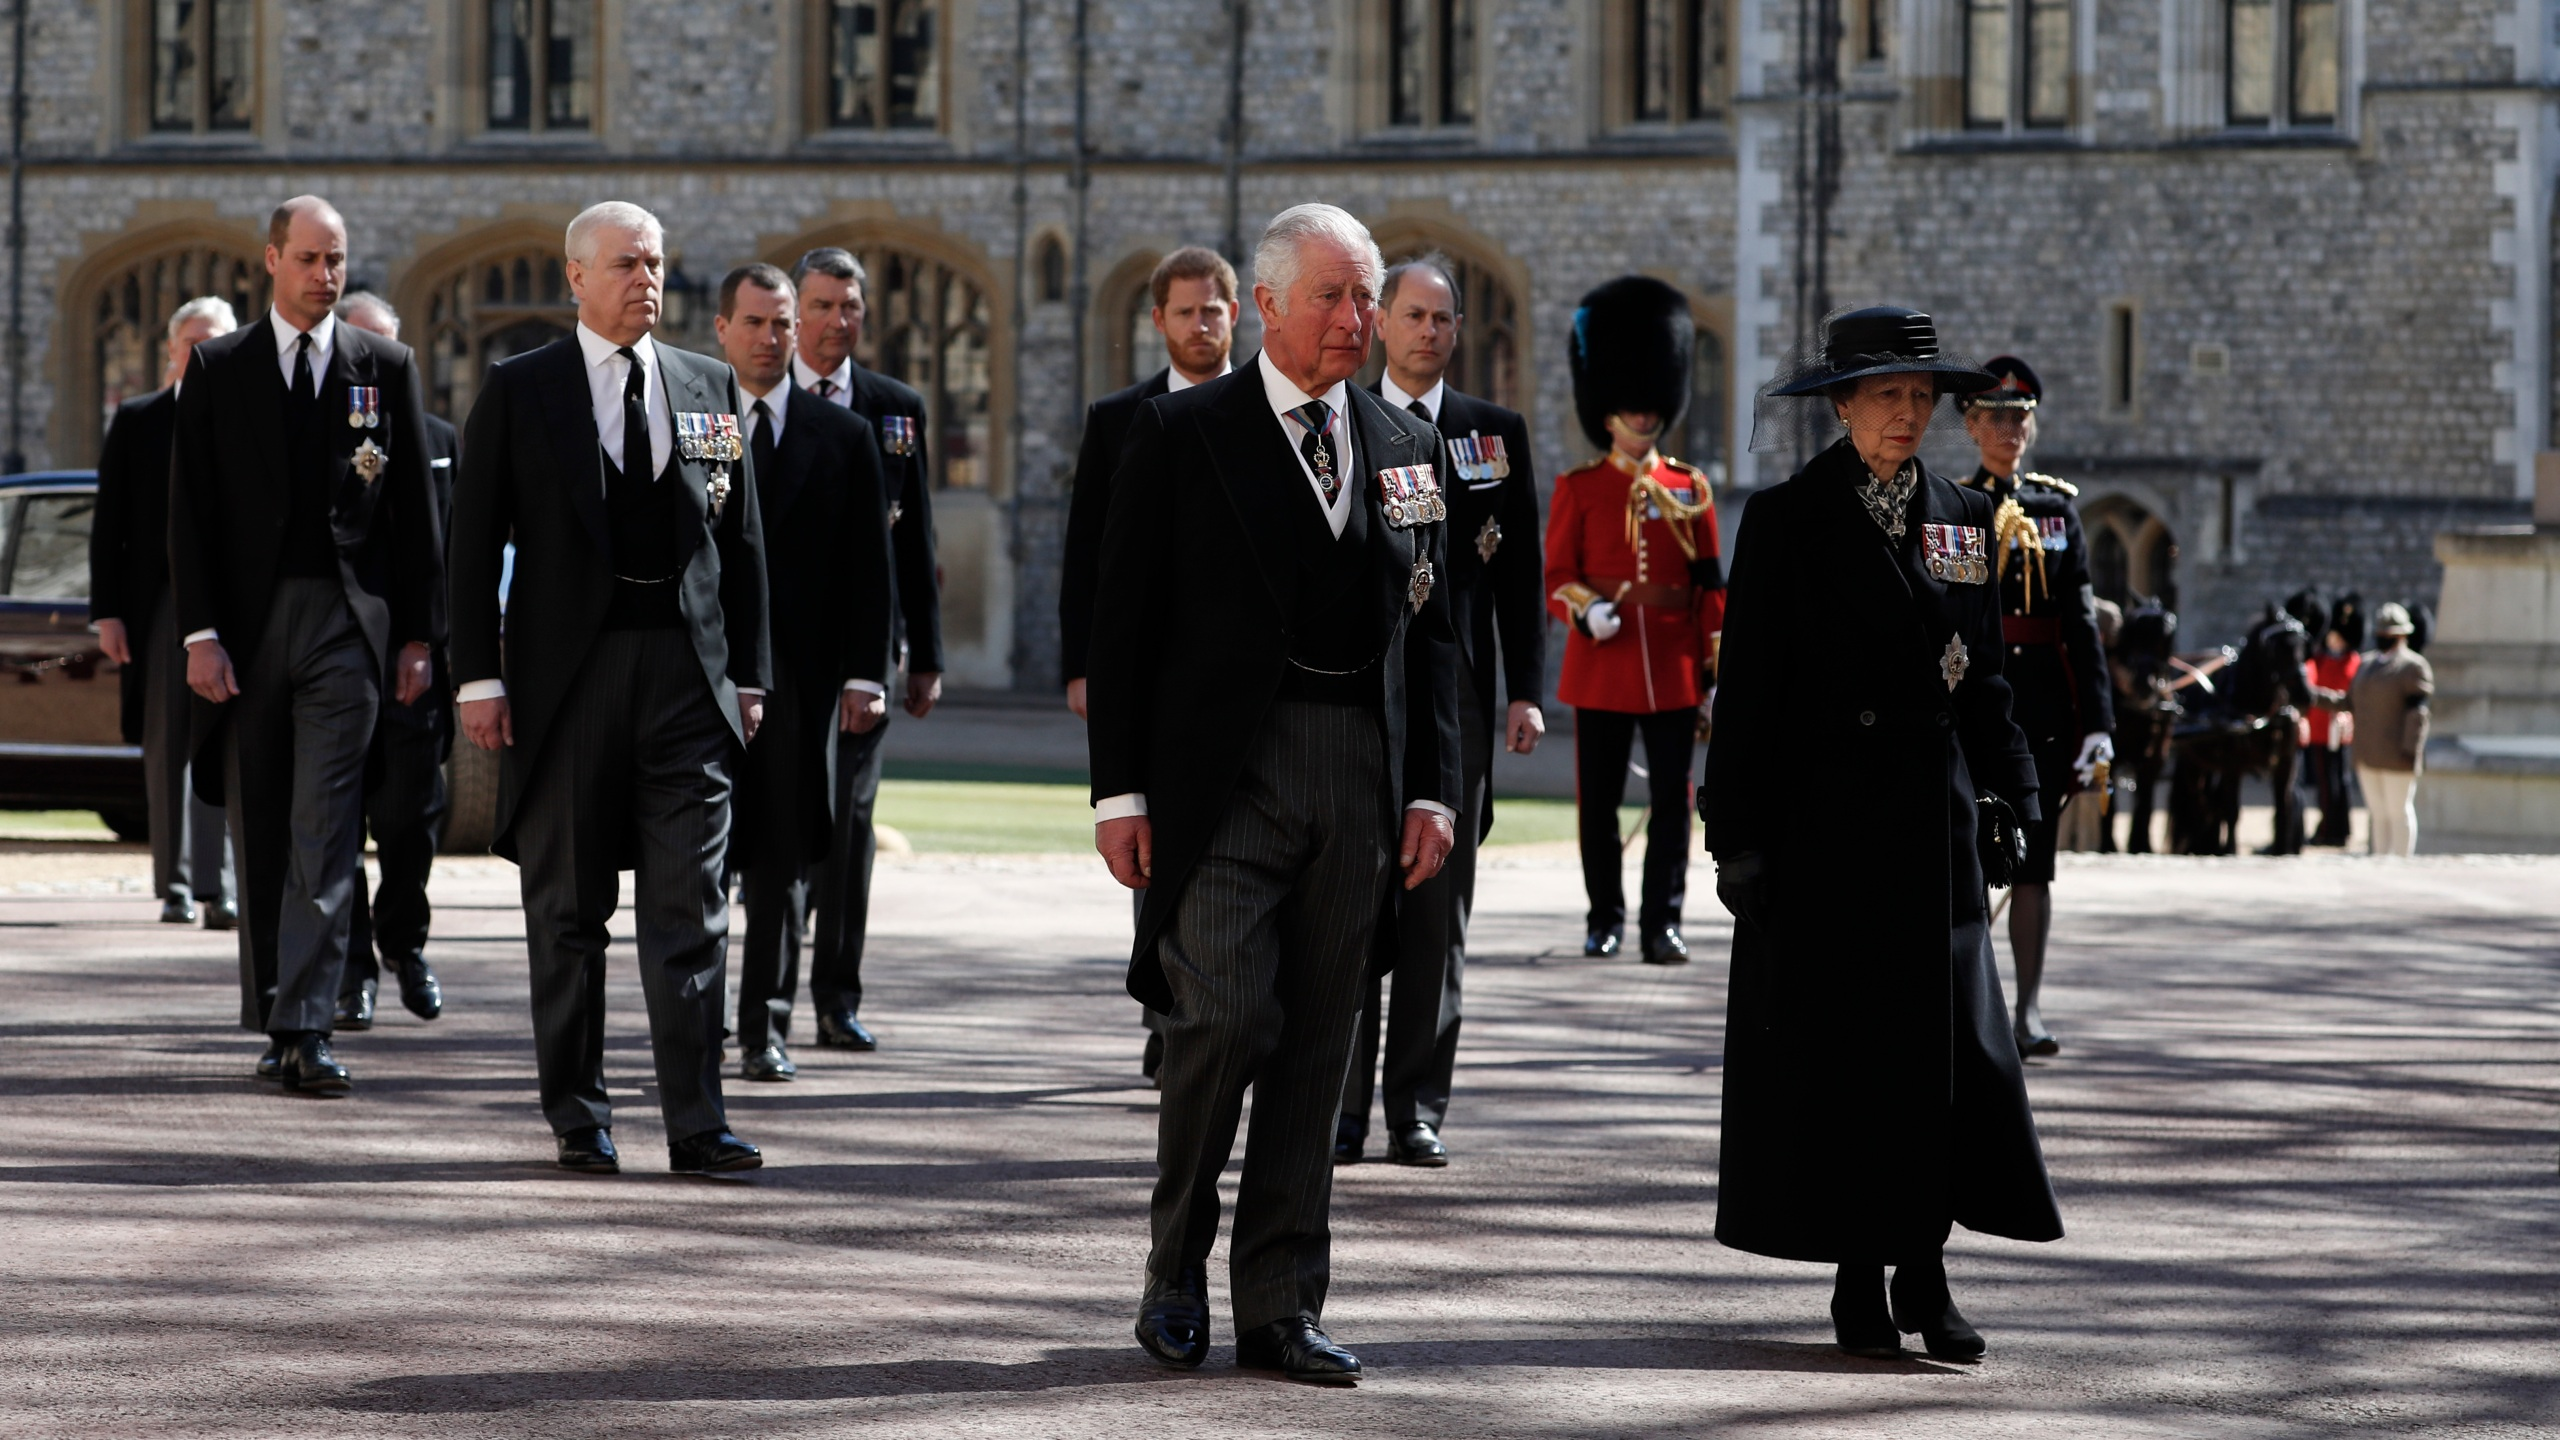 From front left, Britain's Prince Charles, Princess Anne, Prince Andrew. Prince Edward, Prince William, Peter Phillips, Prince Harry, Earl of Snowdon and Tim Laurence follow the coffin in a ceremonial procession for the funeral of Britain's Prince Philip inside Windsor Castle in Windsor, England Saturday April 17, 2021. Prince Philip died April 9 at the age of 99 after 73 years of marriage to Britain's Queen Elizabeth II. (Alastair Grant/Pool via AP)